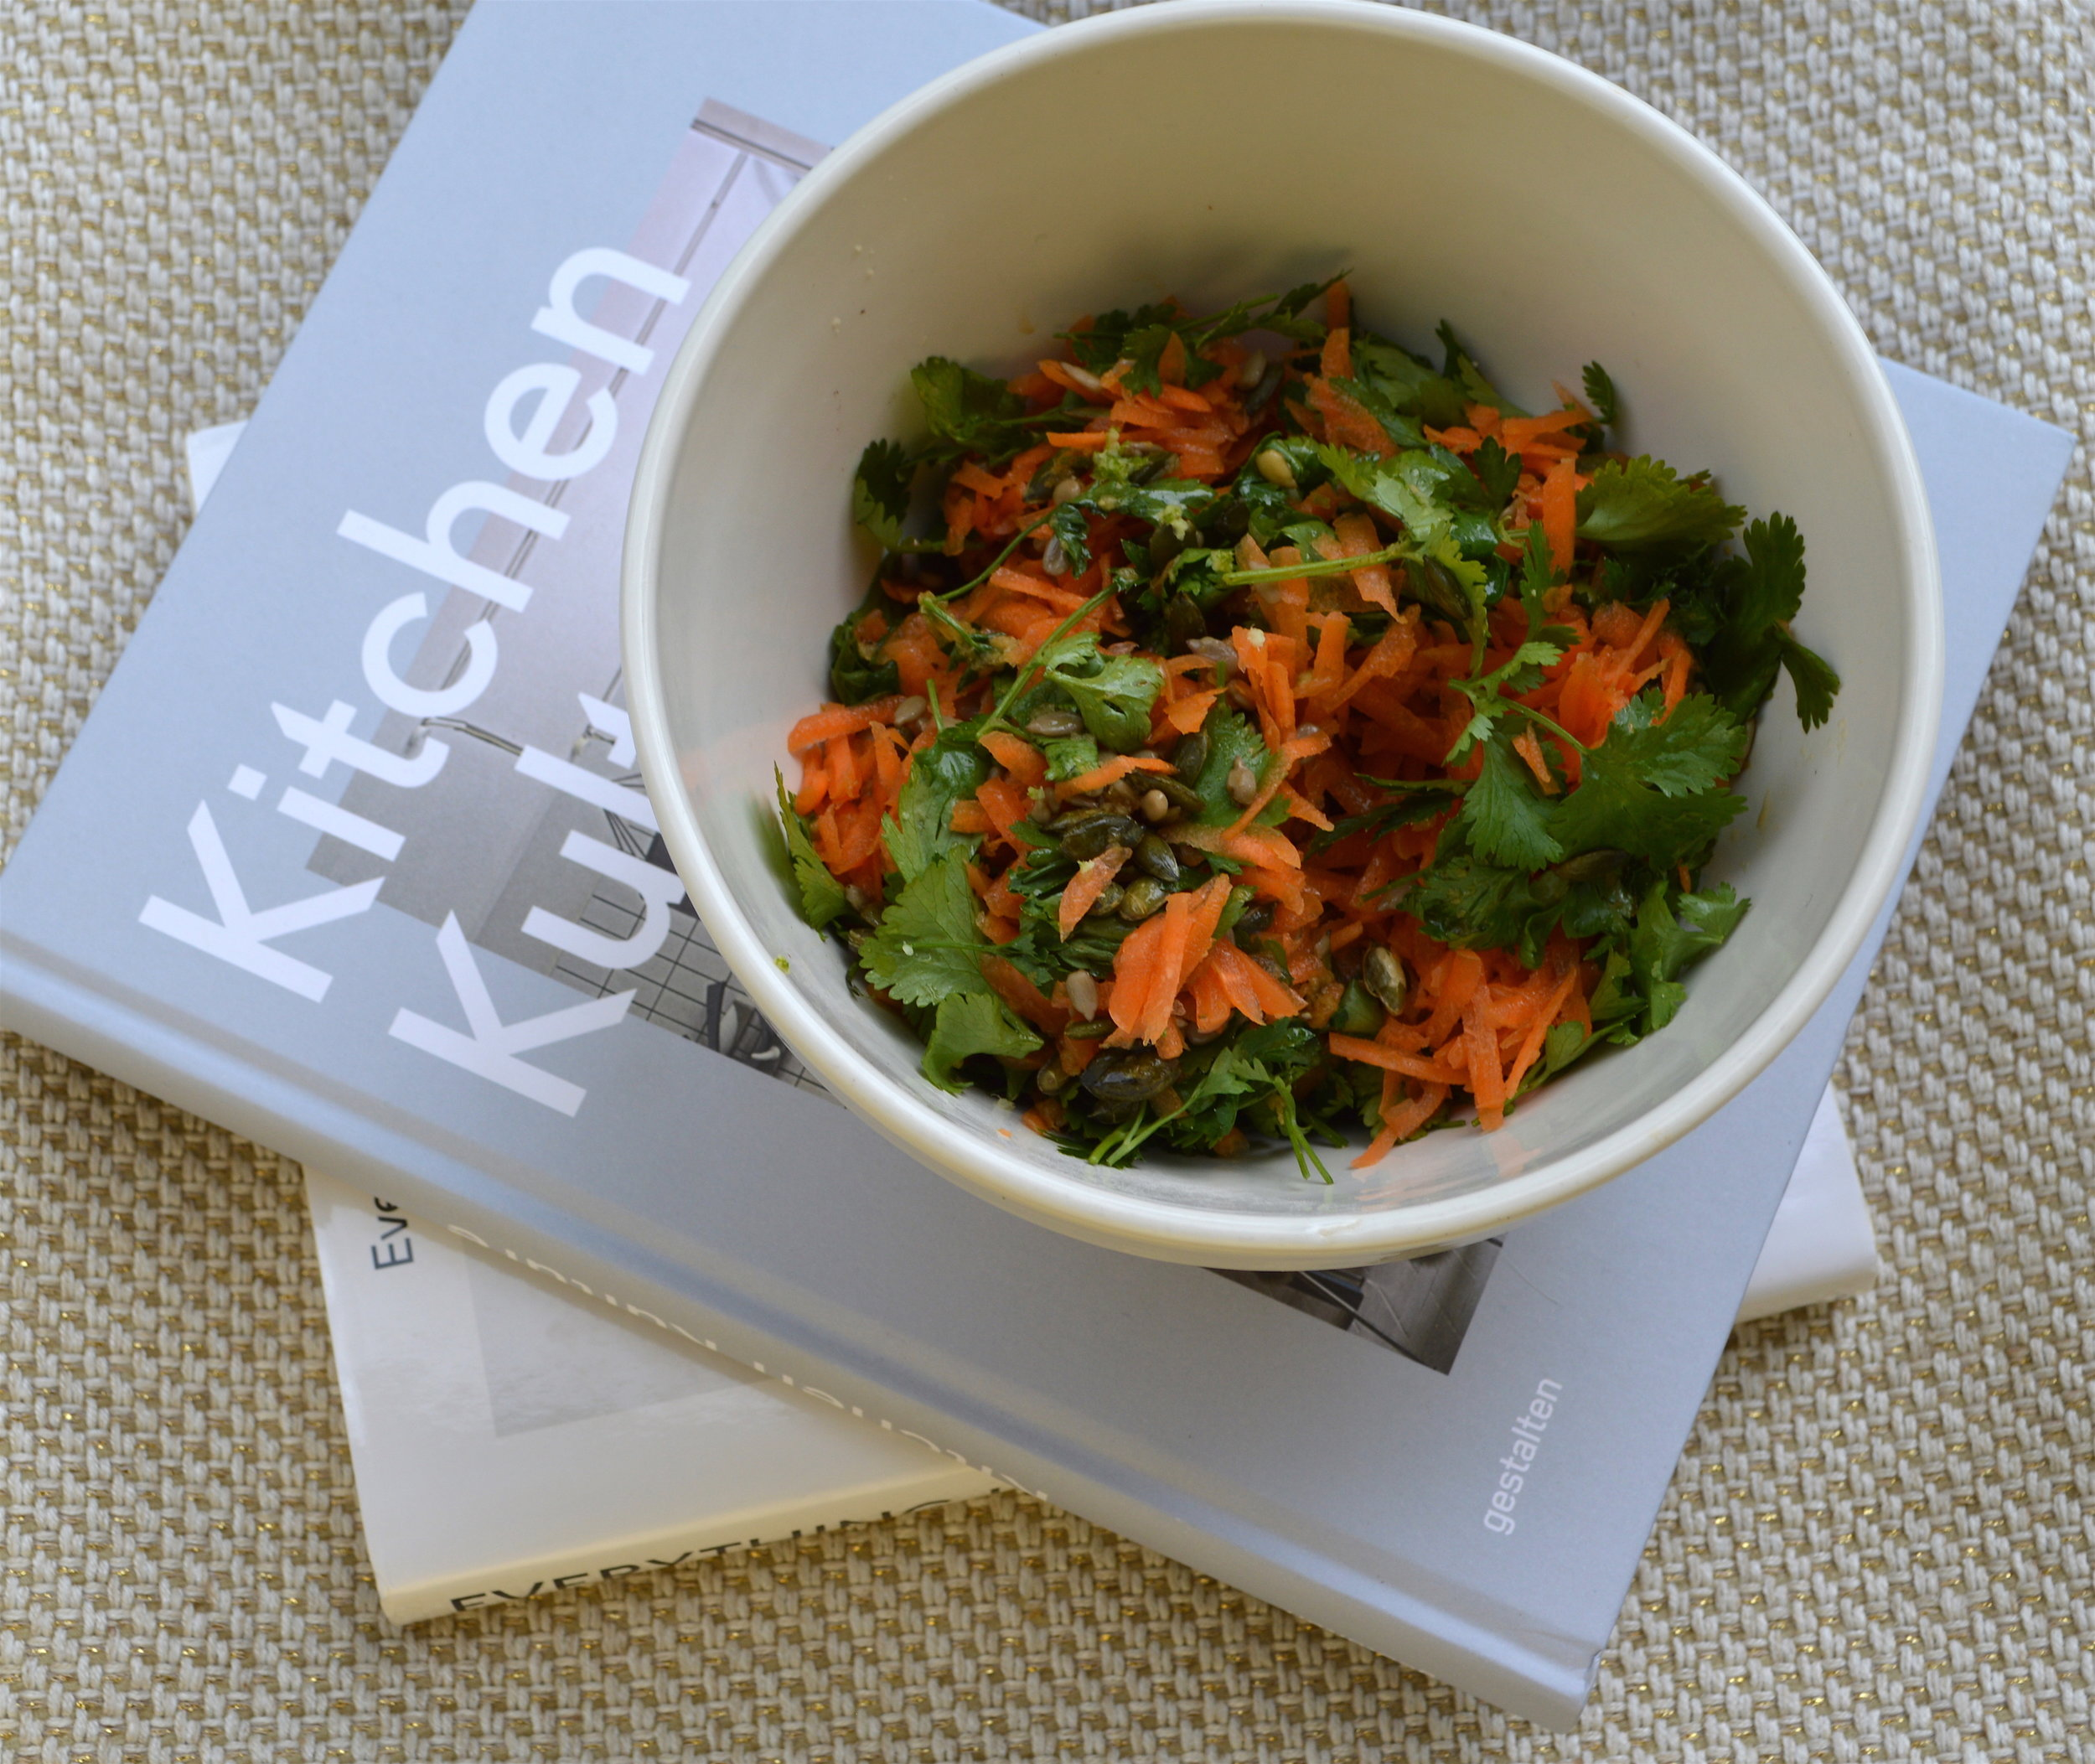 This is a good one to take into work as it doesn't go soggy or makes for a nice side.  It's great with roast chicken or a fillet of fish!  Below are two great book recommendations; Kitchen Kulture from Gestalten which has some incredible kitchen interiors and Everything I Want To Eat by Jessica Koslow.  Serves 1  Ingredients:  4 carrots, grated  3 tbsp toasted pumpkin seeds  2 tbsp sunflower seeds  large handful coriander leaves  large handful parsley leaves  Dressing:  1 large tsp grated ginger  1 tbsp soya sauce  2 tbsp sunflower seeds  2 tbsp cidre vinegar/white wine vinegar  3 tbsp olive oil  1 tbsp lime juice  sea salt and black pepper  In a bowl add all the ingredients and mix the dressing ingredients separately in a small bowl.  Taste to check the seasoning and toss through the salad.  Eat straight away.